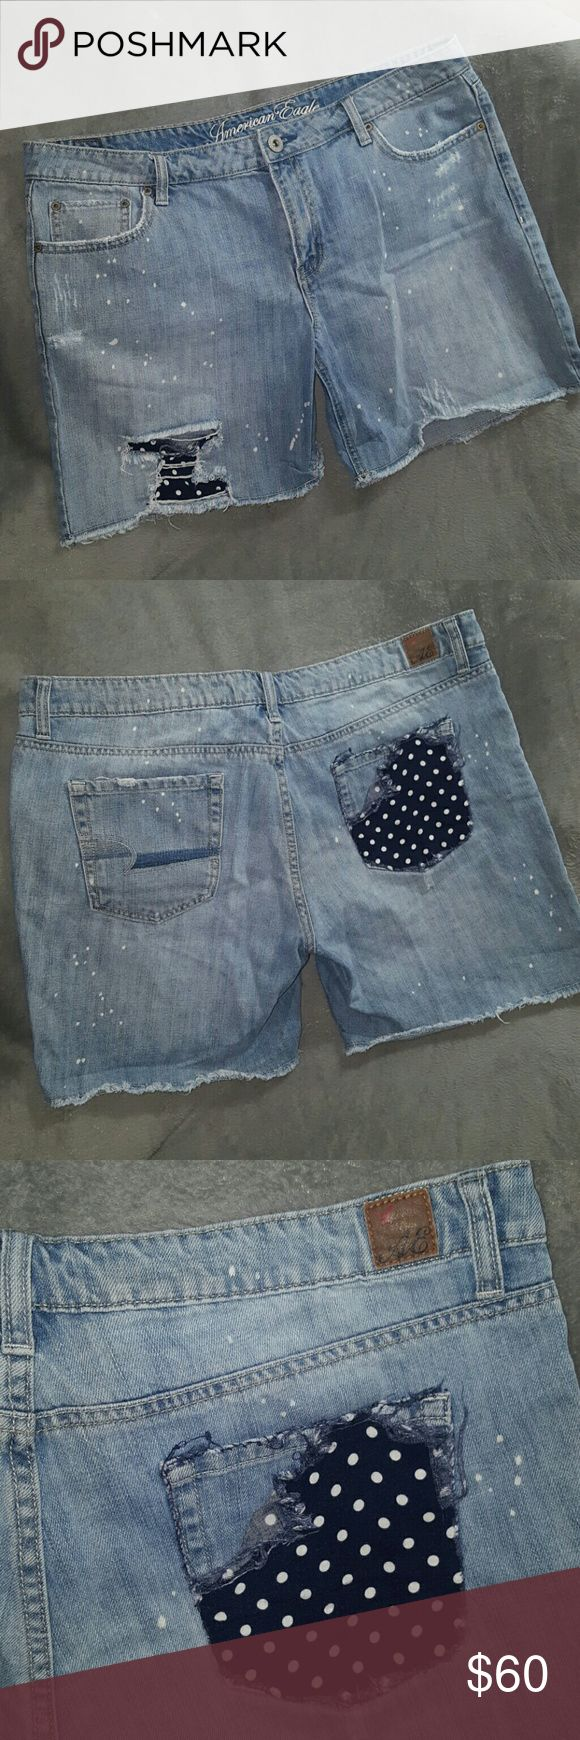 DISTRESS High Waist Jean Shorts AMERICAN Eagle NEW DISTRESS High Waist Jean Shorts AMERICAN Eagle New ~ Size 14 ~ 100% cotton. Distressed Jean shorts as purchased. Has hole with material behind, frays and faux paint splatters. AMAZING Pair of shorts. Will definitely be your go to shorts this summer! I ship daily (# B2 location) American Eagle Outfitters Shorts Jean Shorts